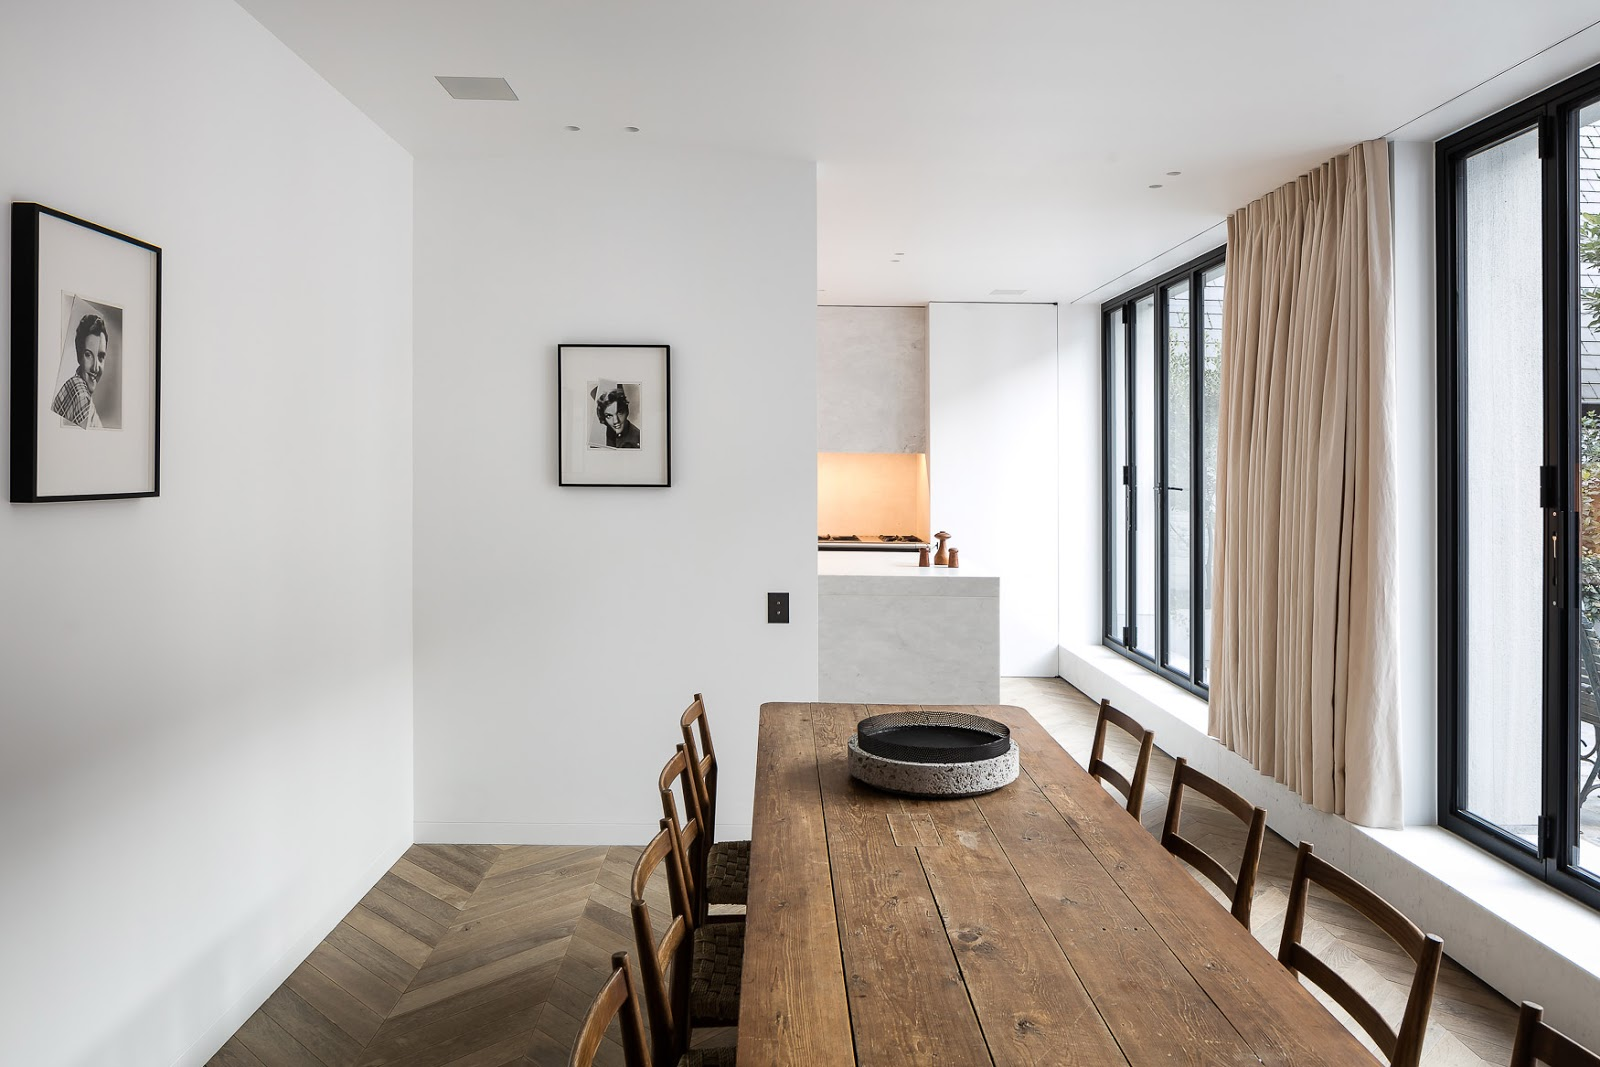 simplicity love mk house belgium nicolas schuybroek architects. Black Bedroom Furniture Sets. Home Design Ideas